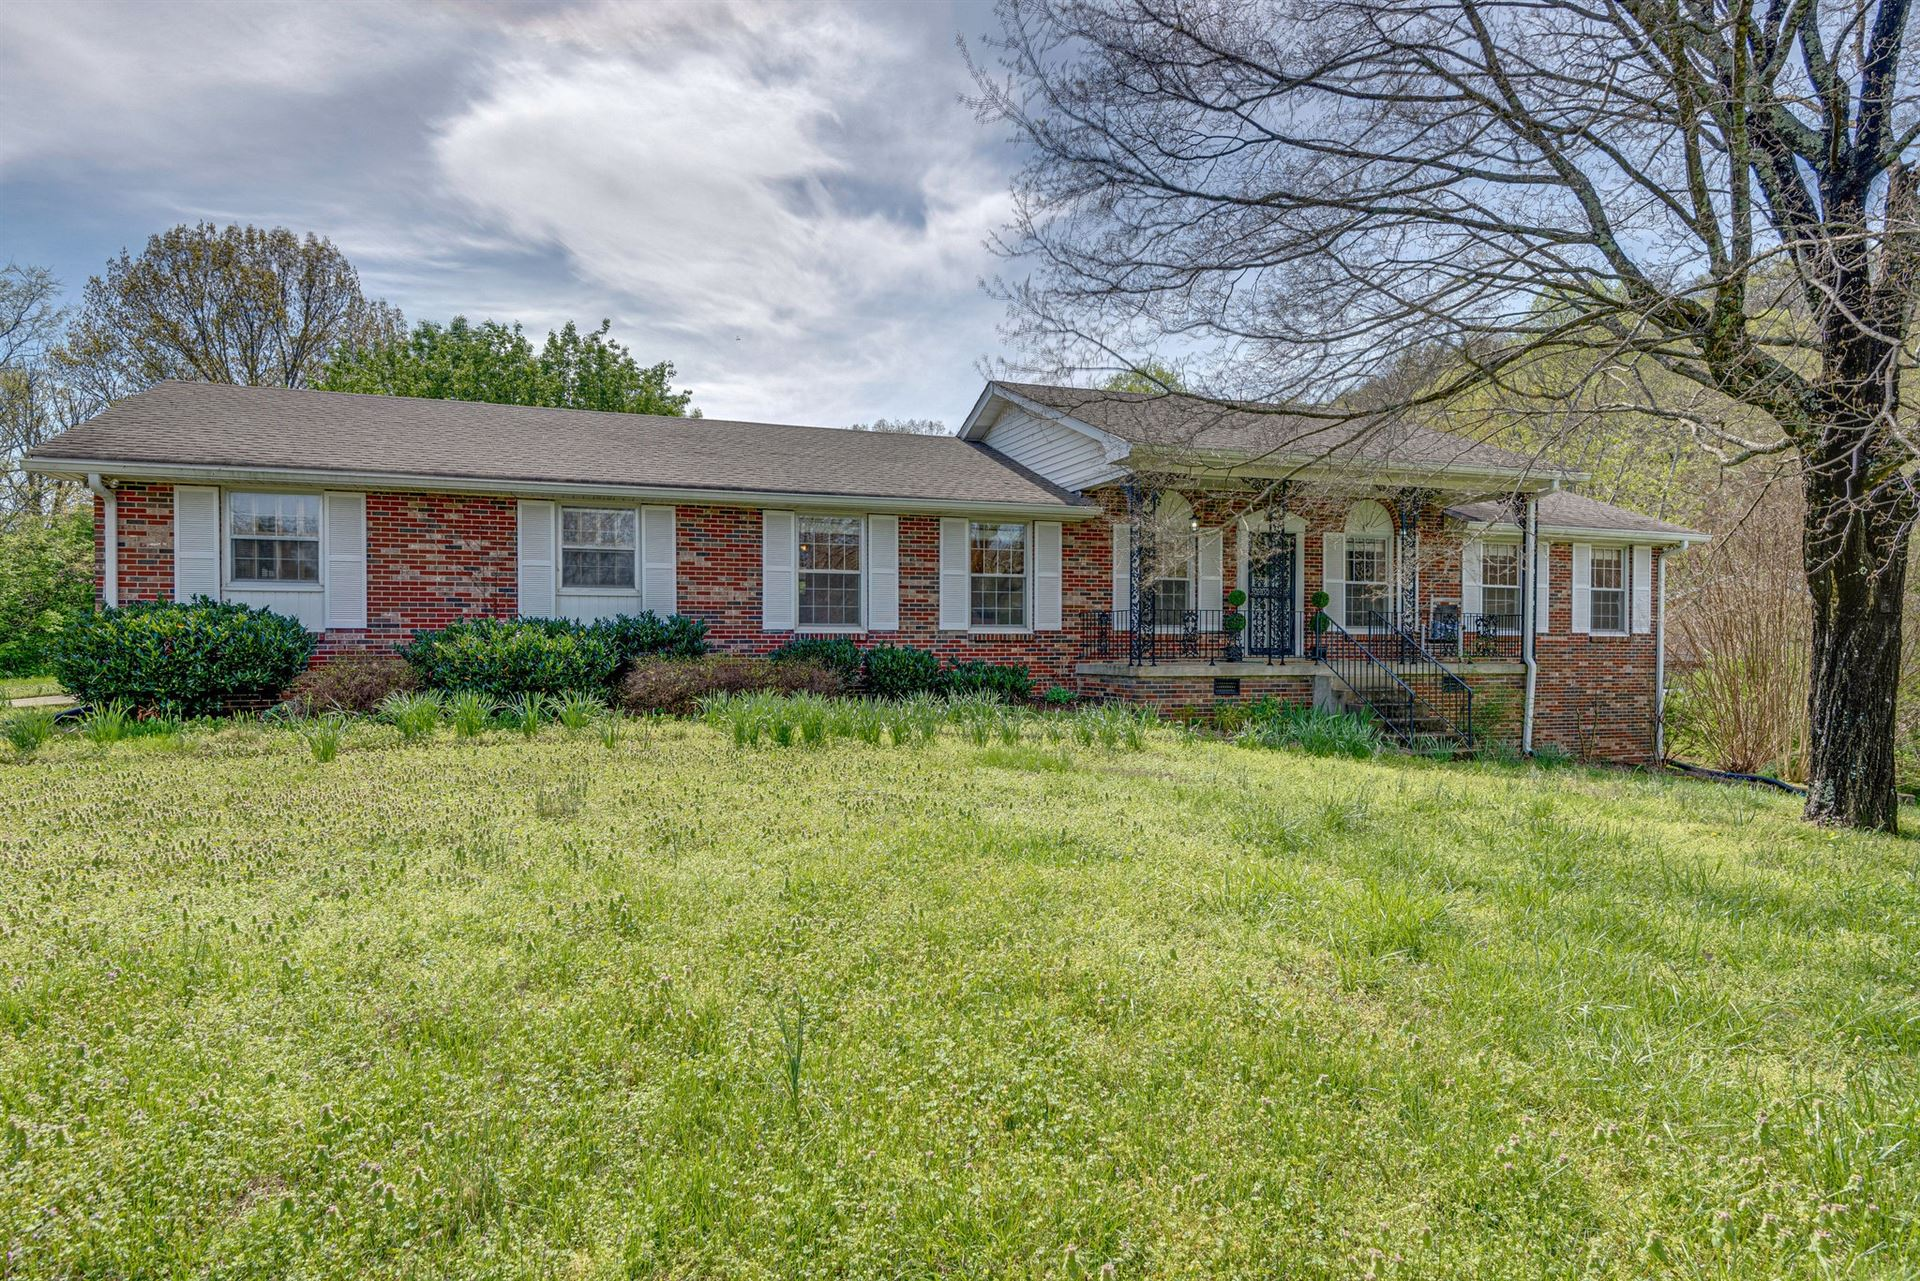 Photo of 1301 Ashby Dr, Brentwood, TN 37027 (MLS # 2137083)